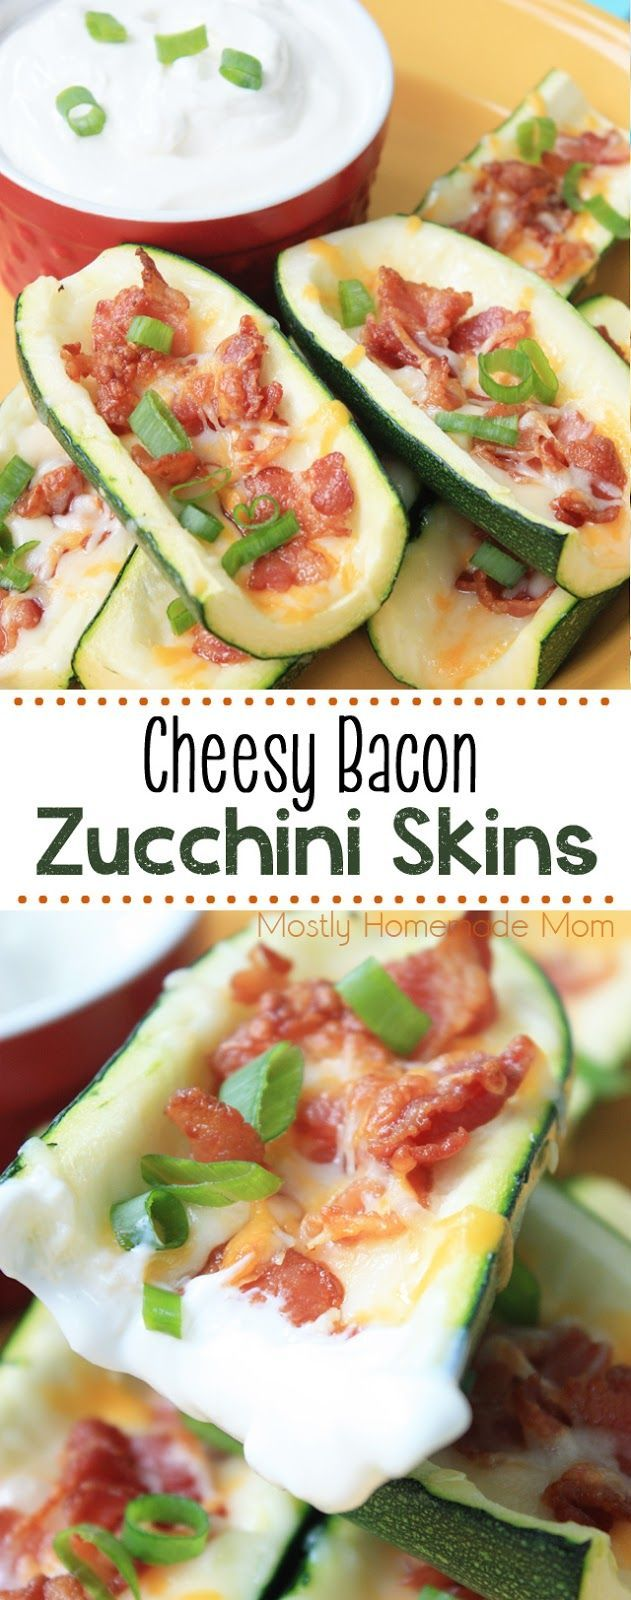 Cheesy Bacon Zucchini Skins |- Loaded with Monterey Jack cheese, bacon, green onion, and dipped in sour cream - these are the low carb version of potato skins you've been looking for! SmithfieldFlavor AD